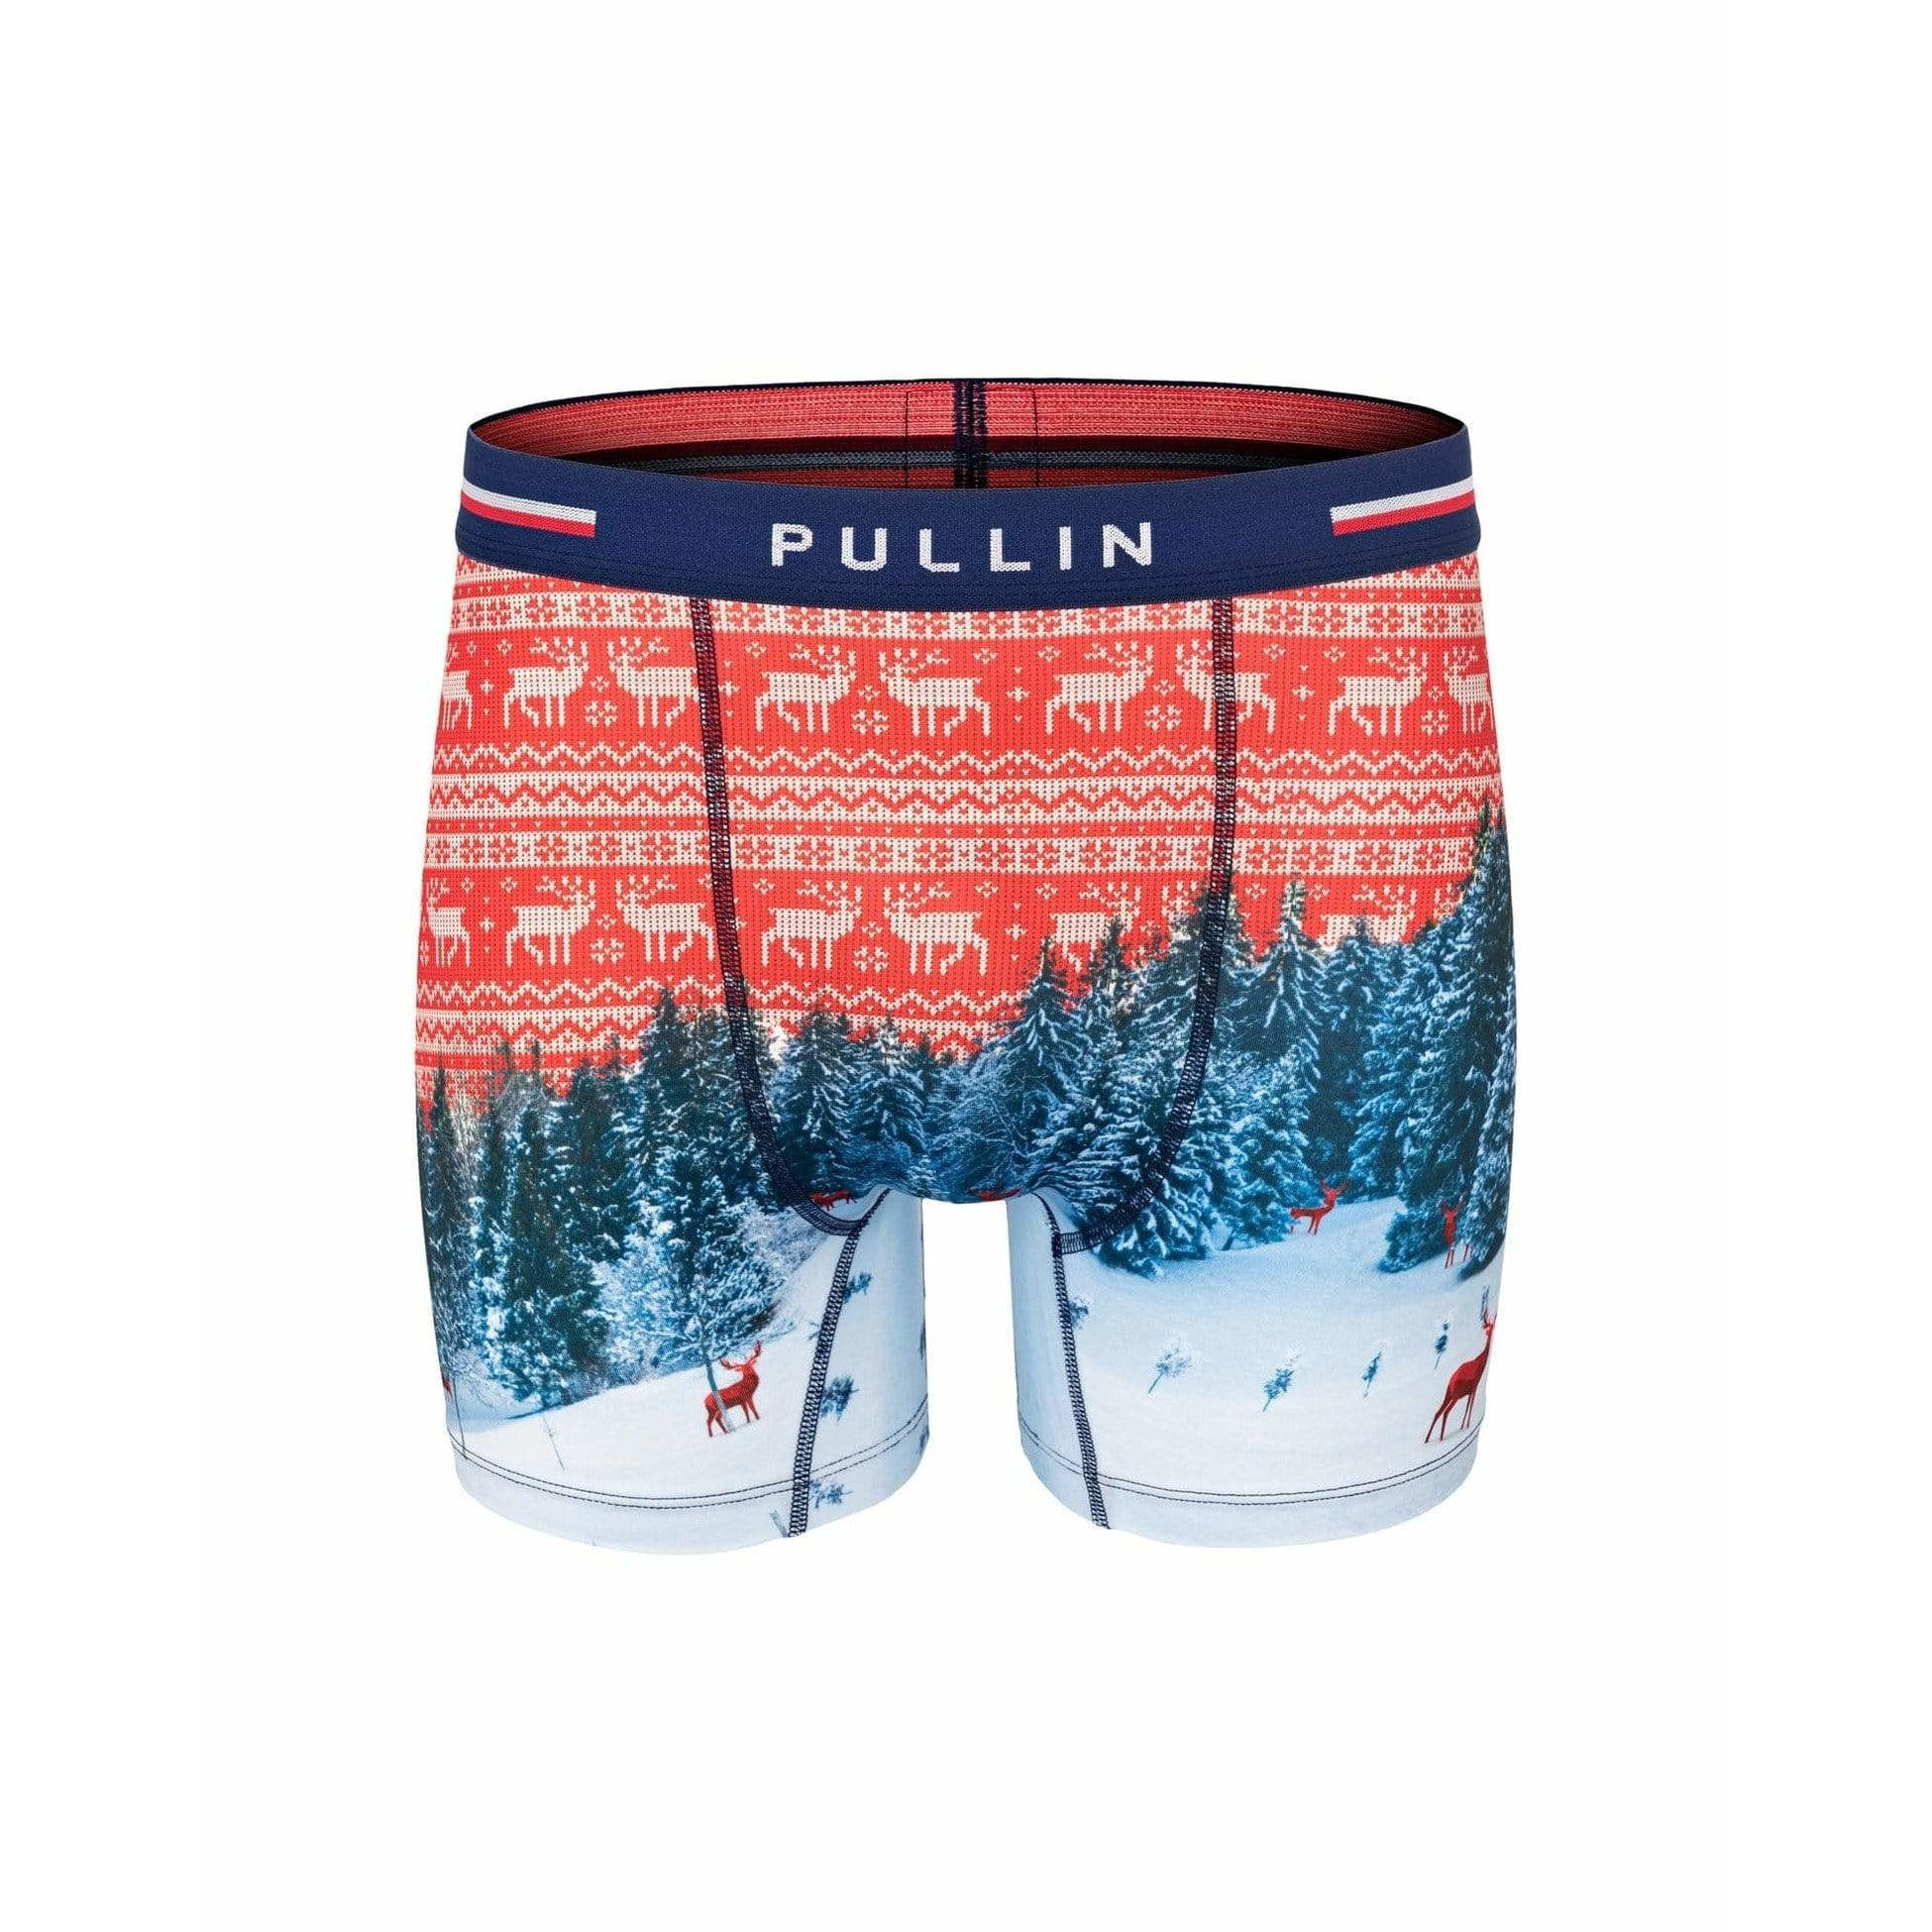 Pullin MULTI / S Pullin Fashion 2 Xmasdear Boxer Brief